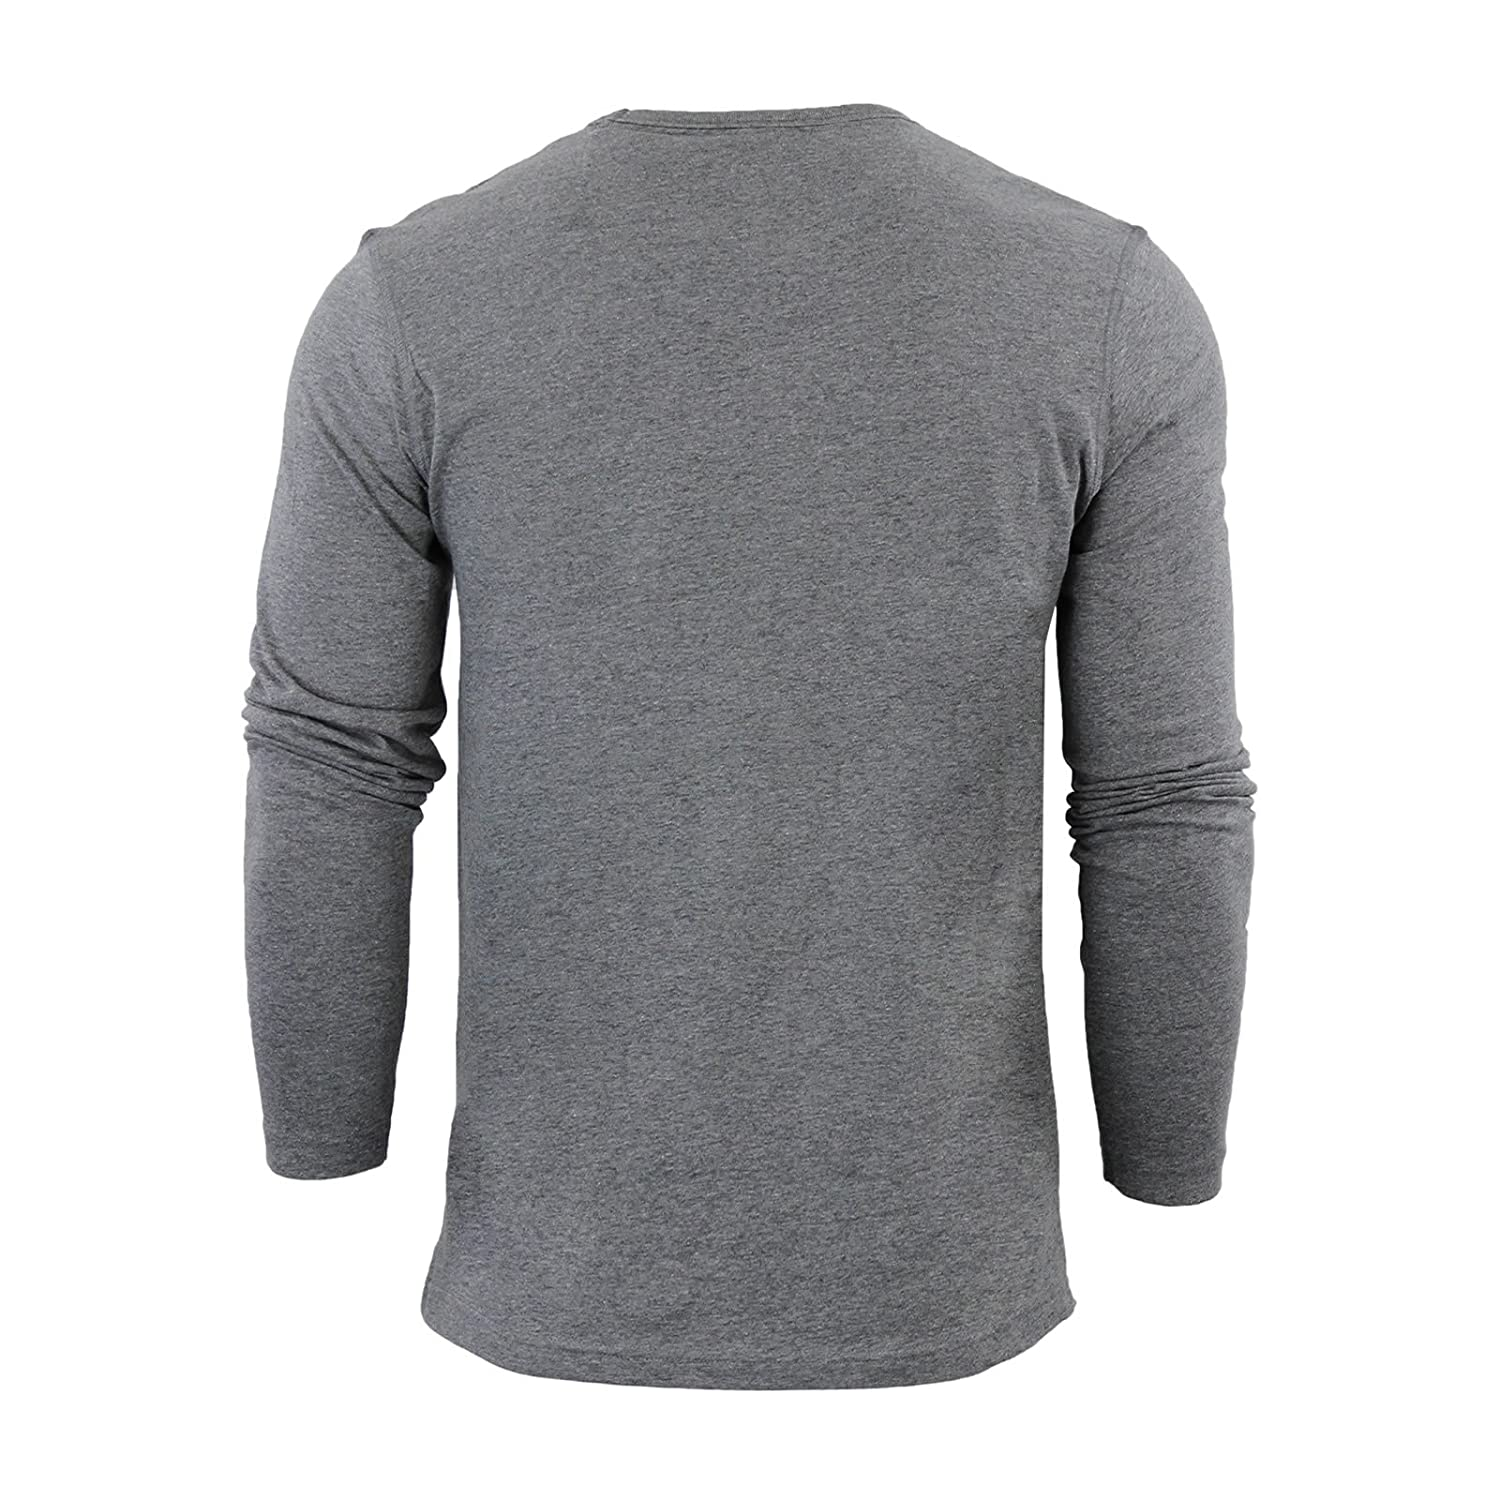 b385835654c5 Mens T-Shirt by Brave Soul Prague Cotton Long Sleeved Crew Neck Casual Top:  Amazon.co.uk: Clothing